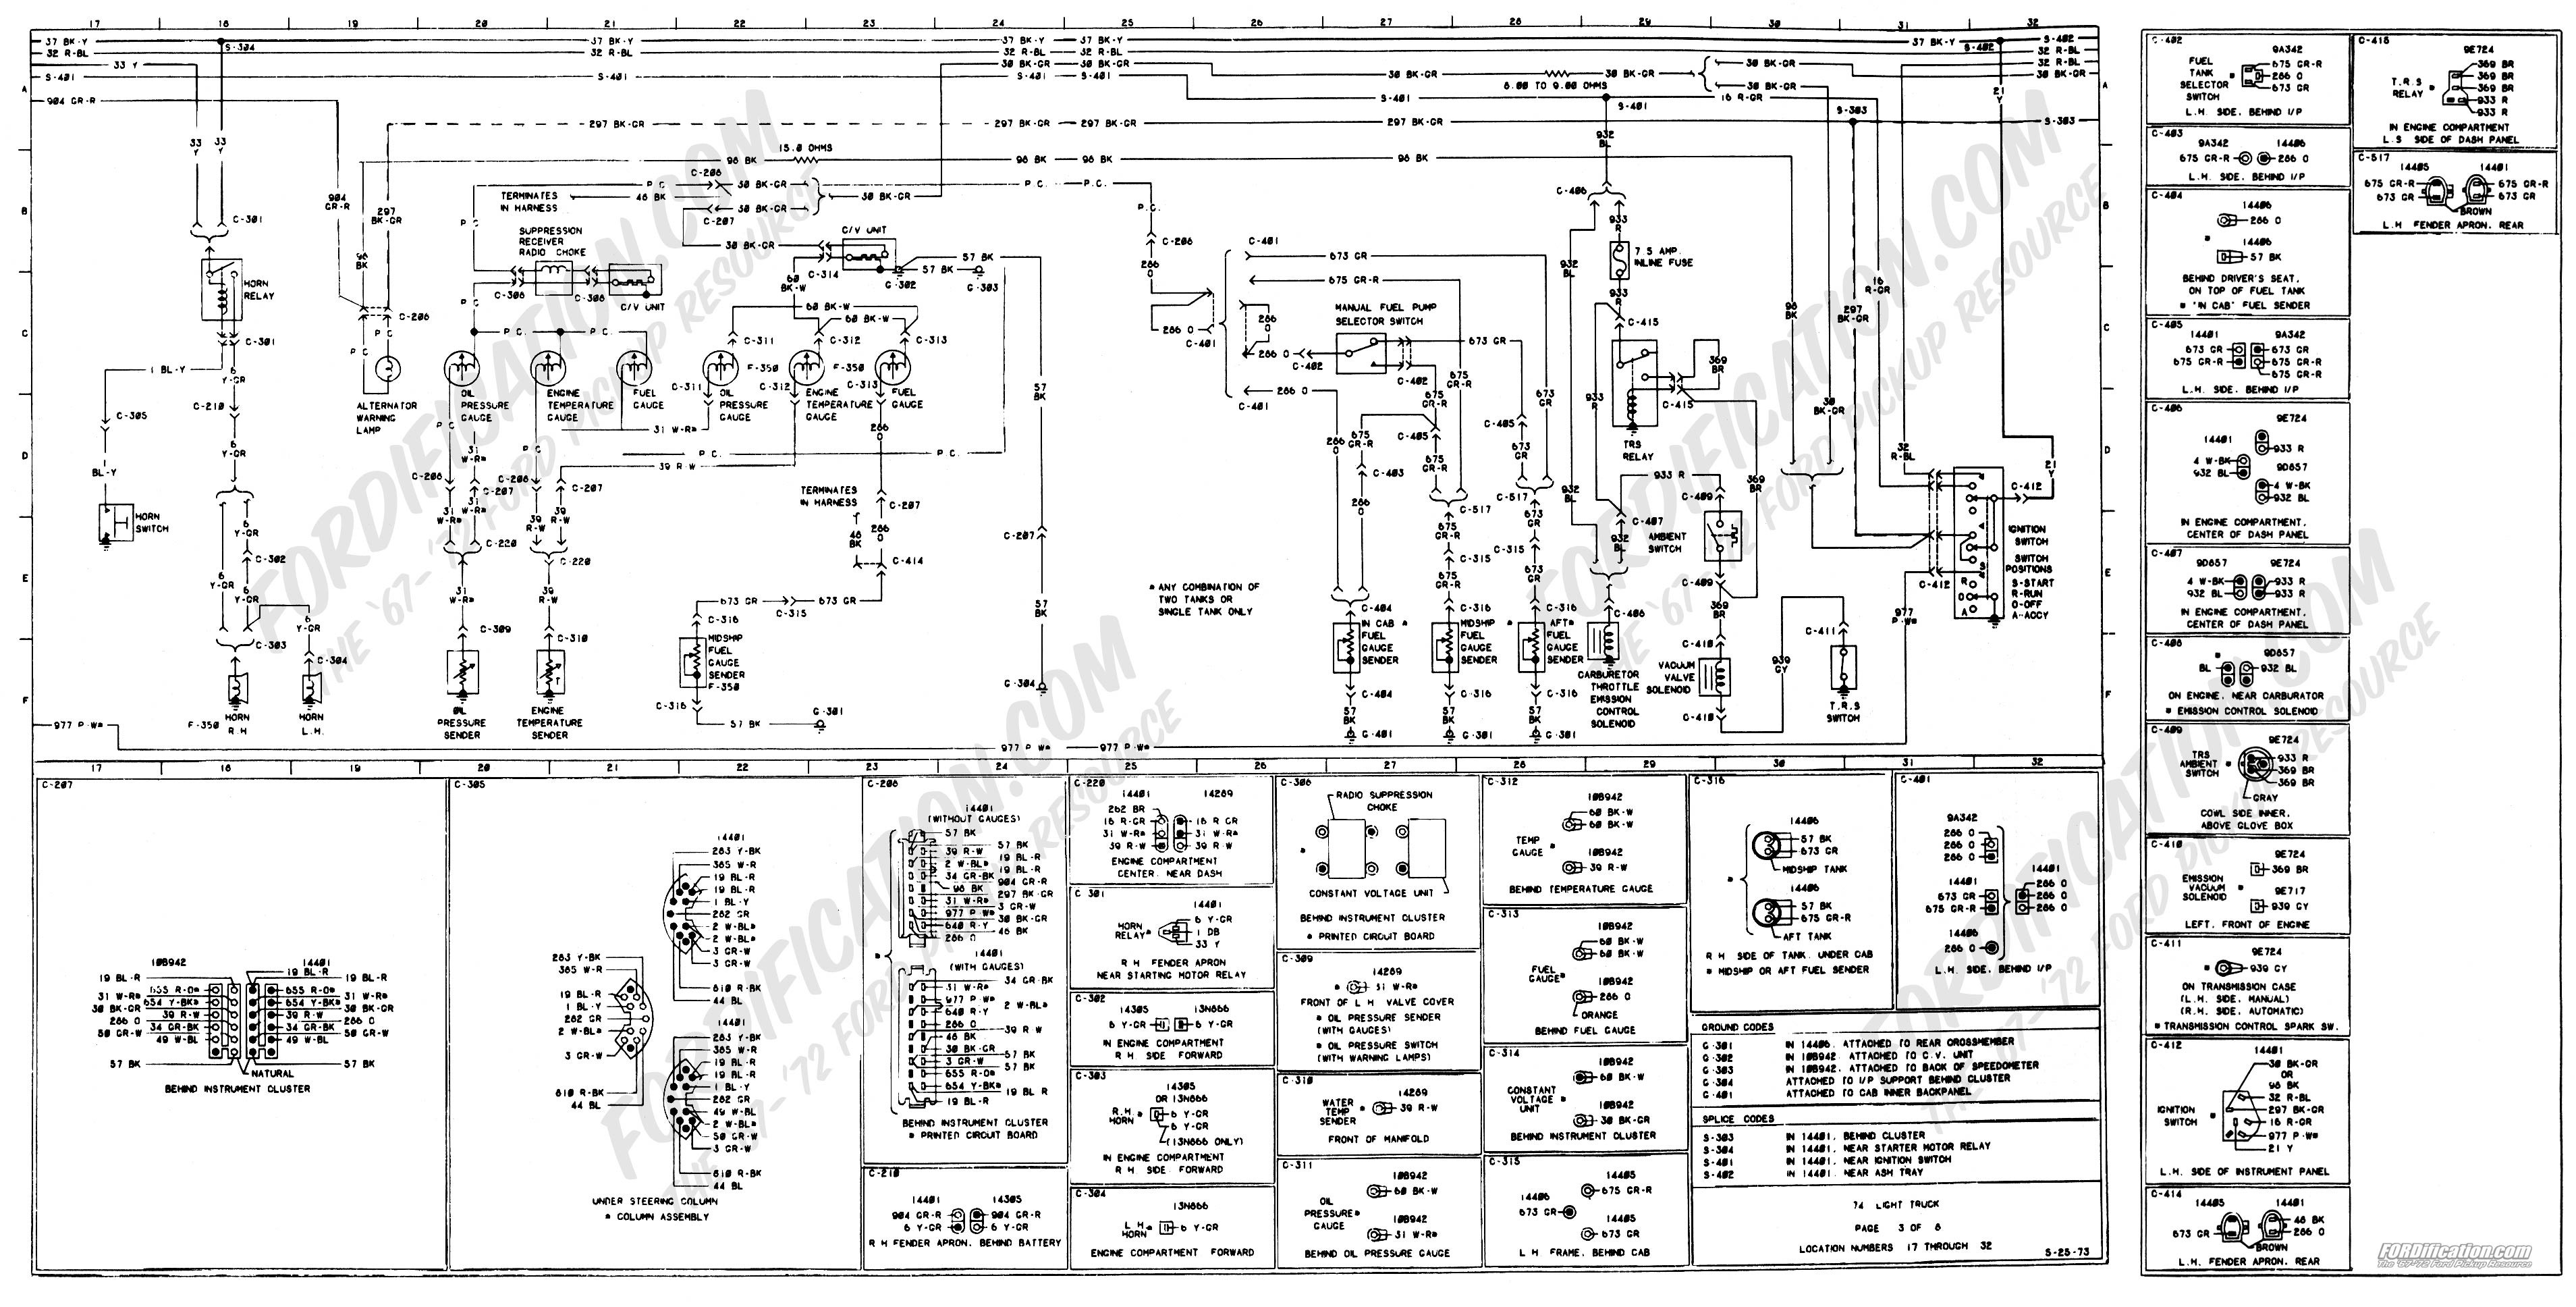 98 Sterling Fuse Diagram - wiring diagram wave-page -  wave-page.albergoinsicilia.it | 99 Sterling Wiring Diagram |  | wave-page.albergoinsicilia.it